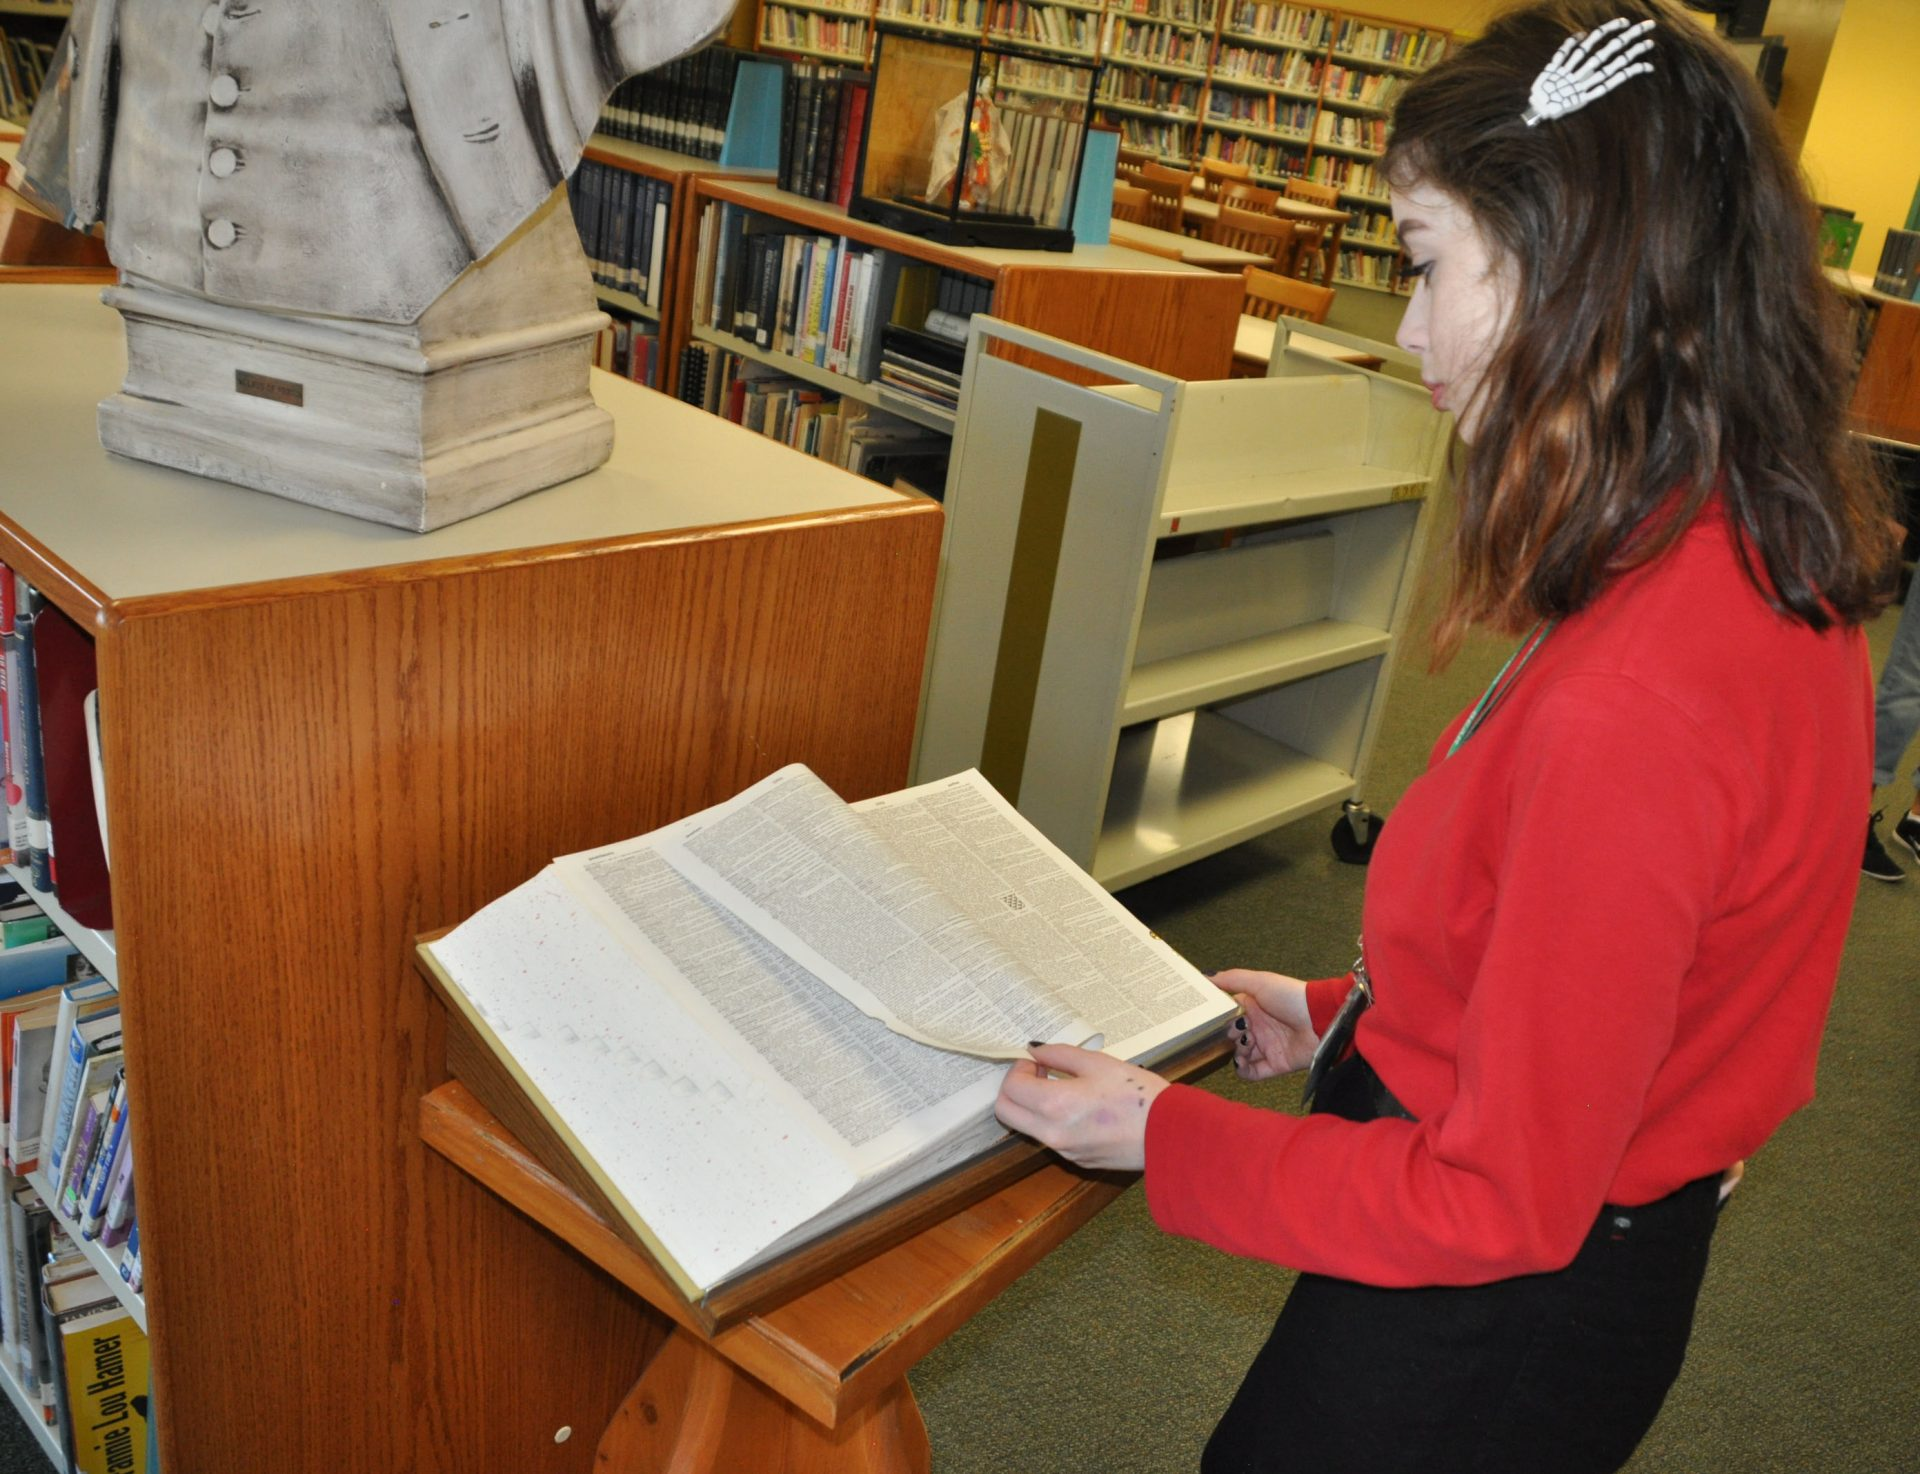 Student looking at a dictionary